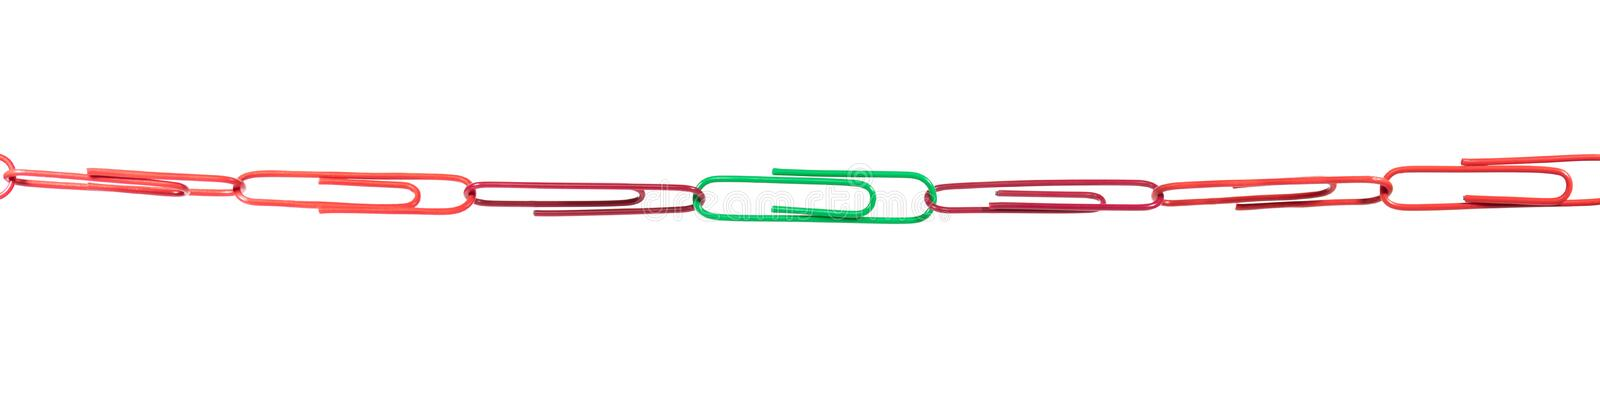 Paper Clips concept, strategy for the group are teamwork and cohesion. Panorama stock images